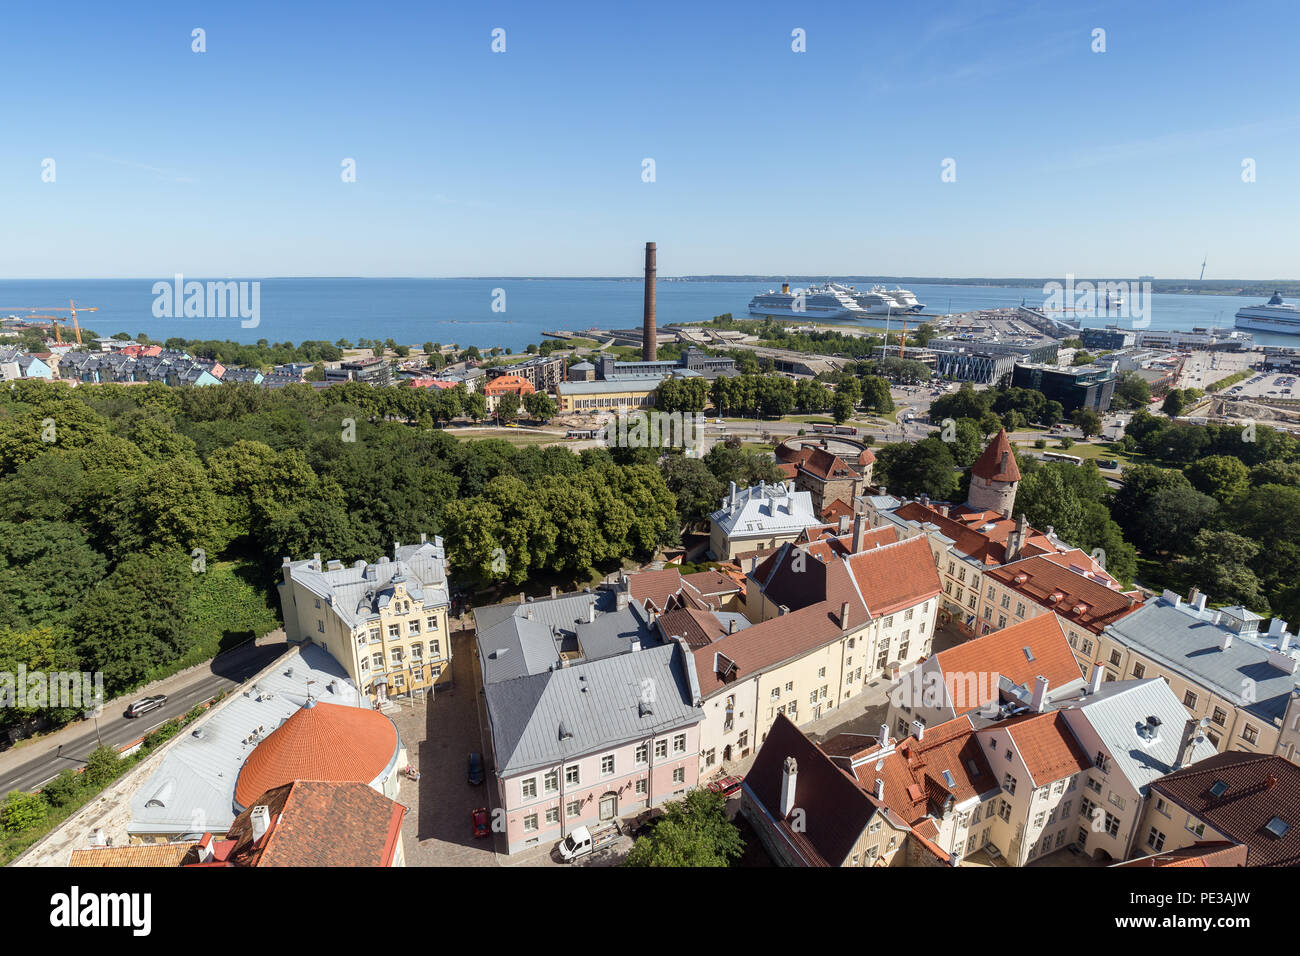 Old buildings at the Old Town, harbor and downtown in Tallinn, Estonia, viewed from above on a sunny day in the summer. - Stock Image